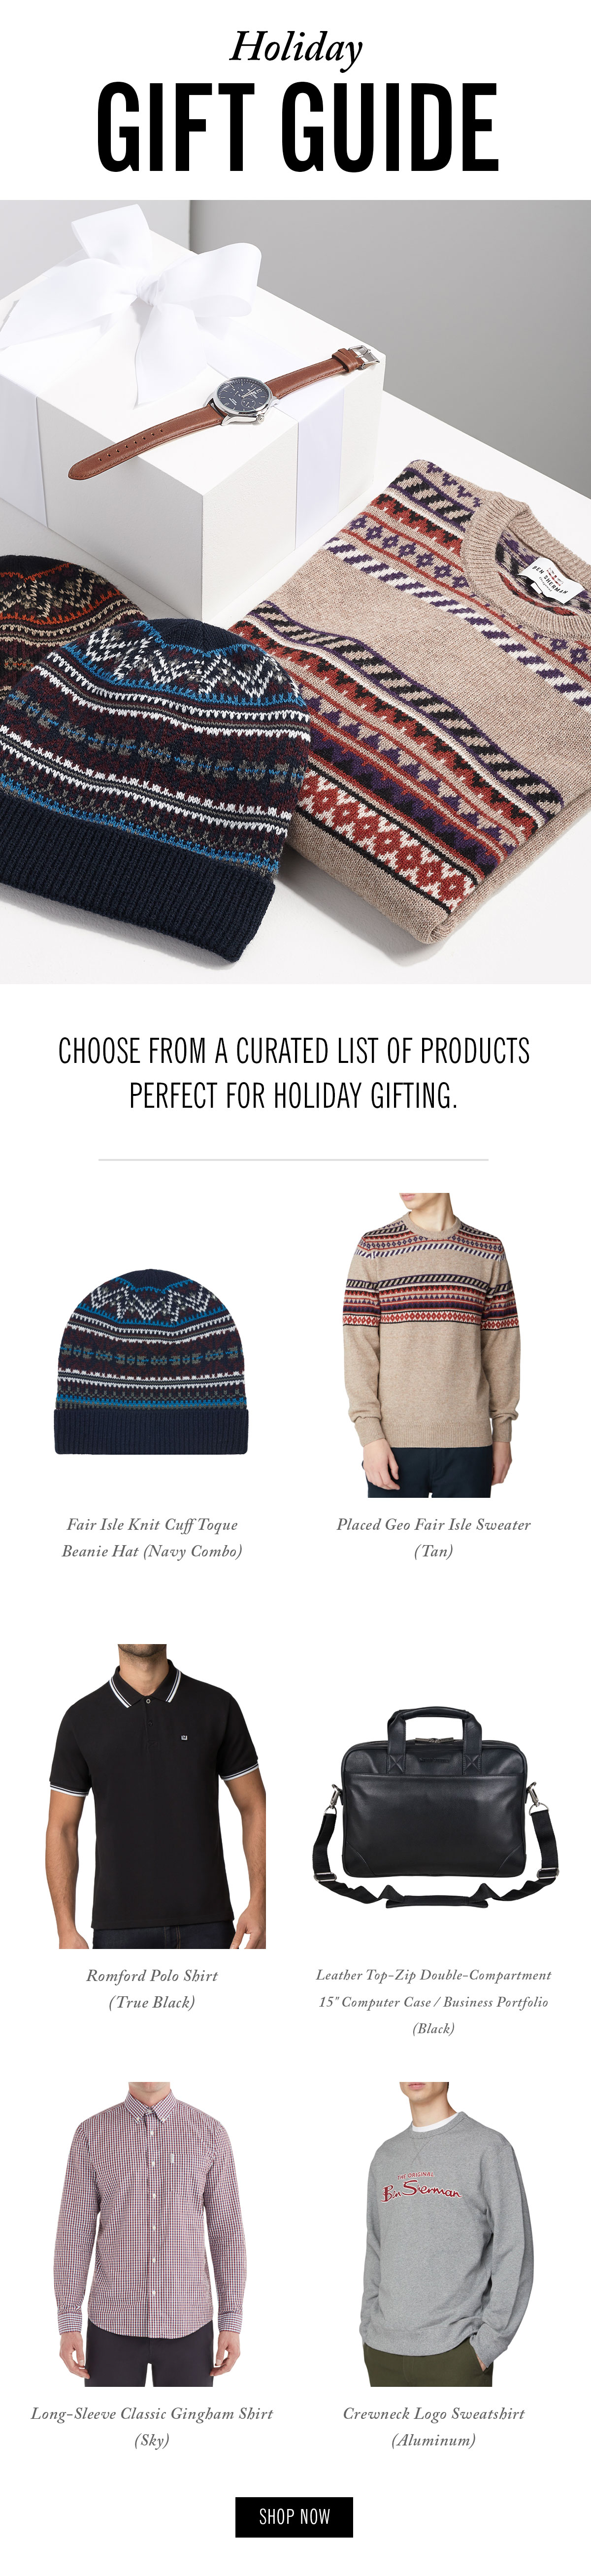 Holiday gift guide | Photo of a watch, a sweater, and two knit hats | Choose from a curated list of products perfect for holiday gifting. | Shop Now